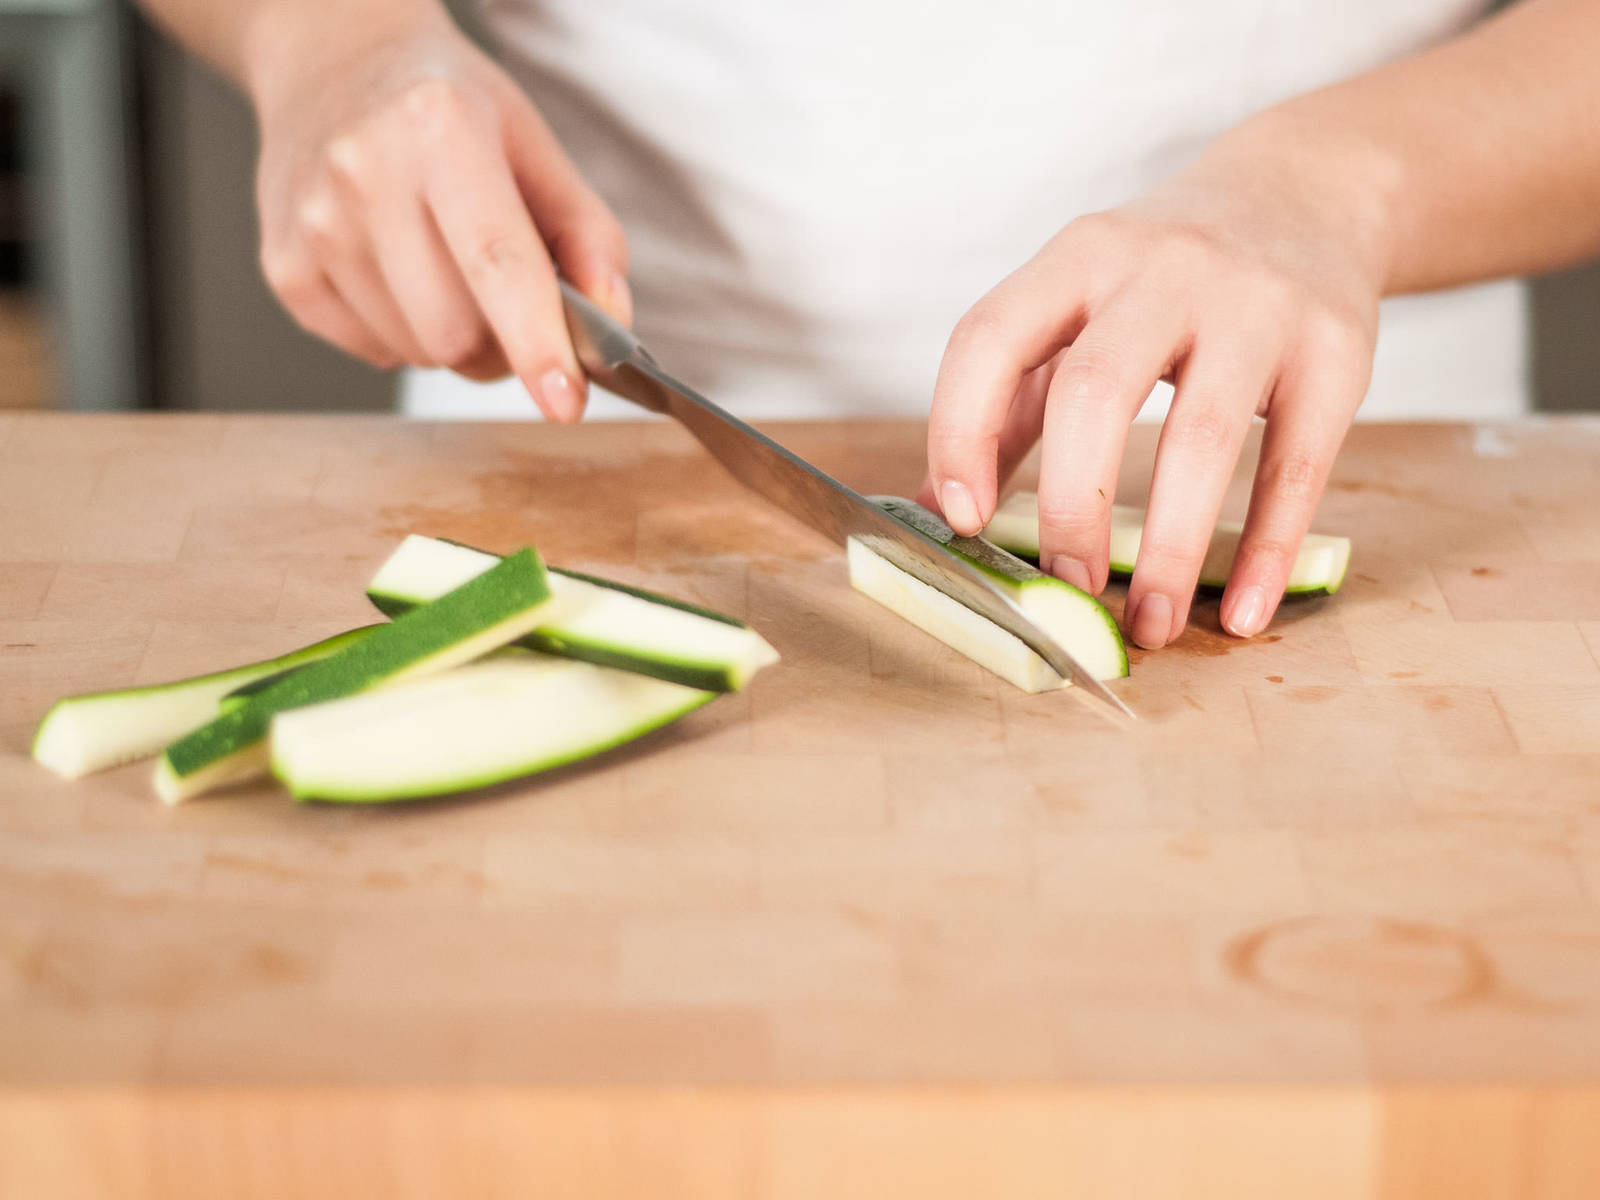 Cut zucchini in half. Quarter lengthwise. Remove the seeds with a diagonal cut. Cut again into strips.